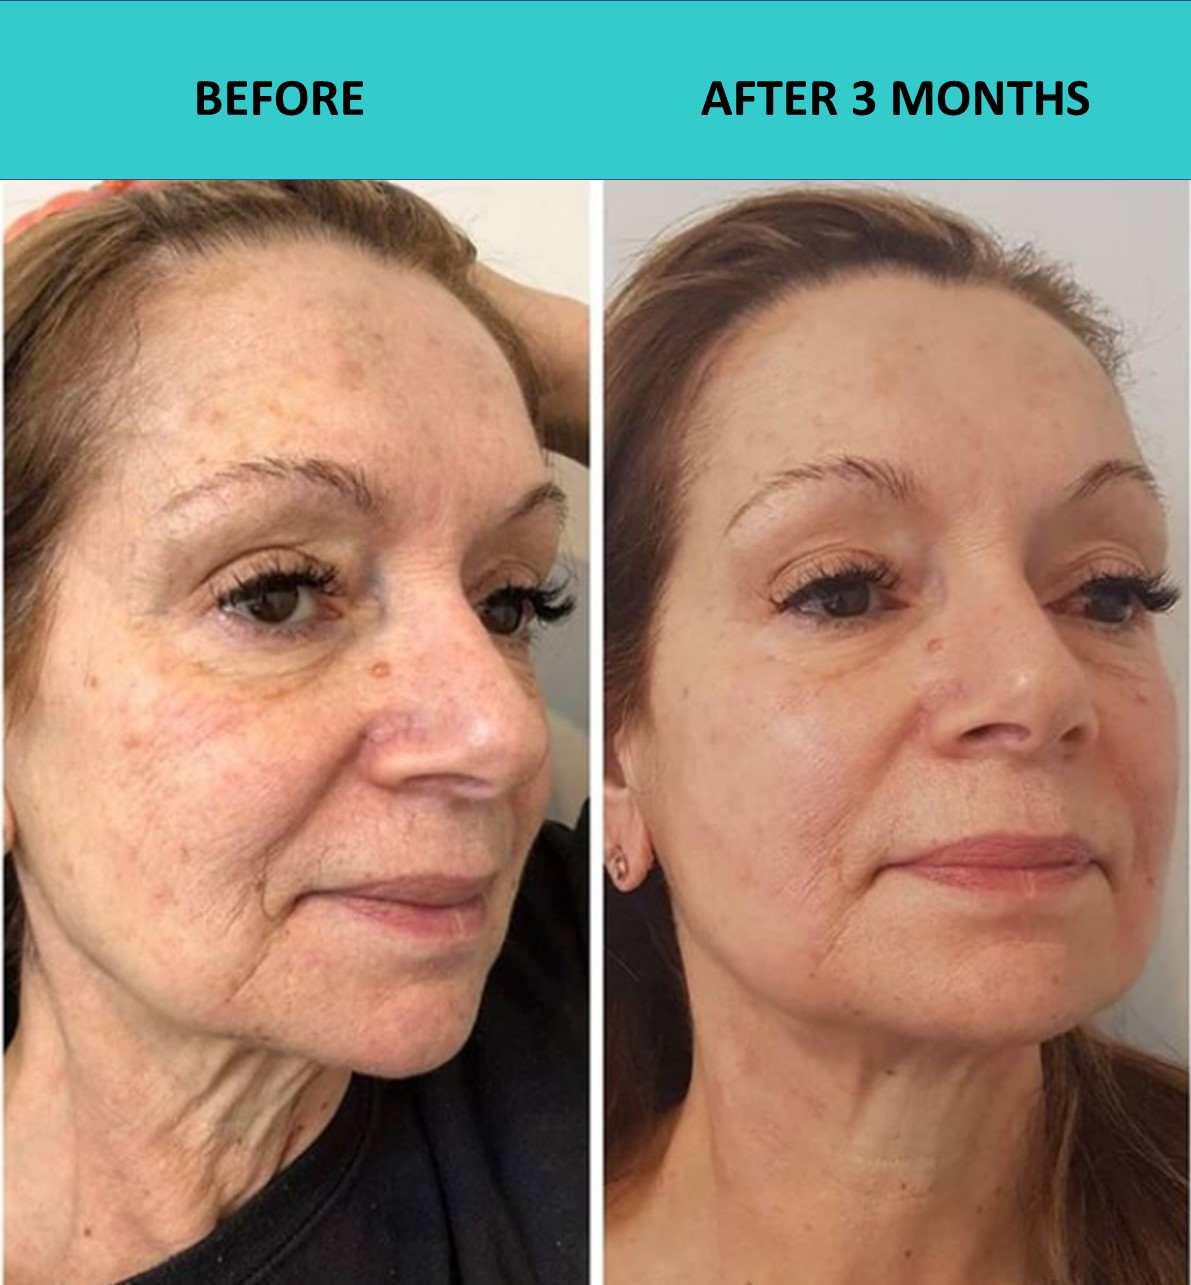 4D HIFU face and neck lift - another great result showing very significant improvements to this customers face making her skin much tighter, fresher and younger looking!